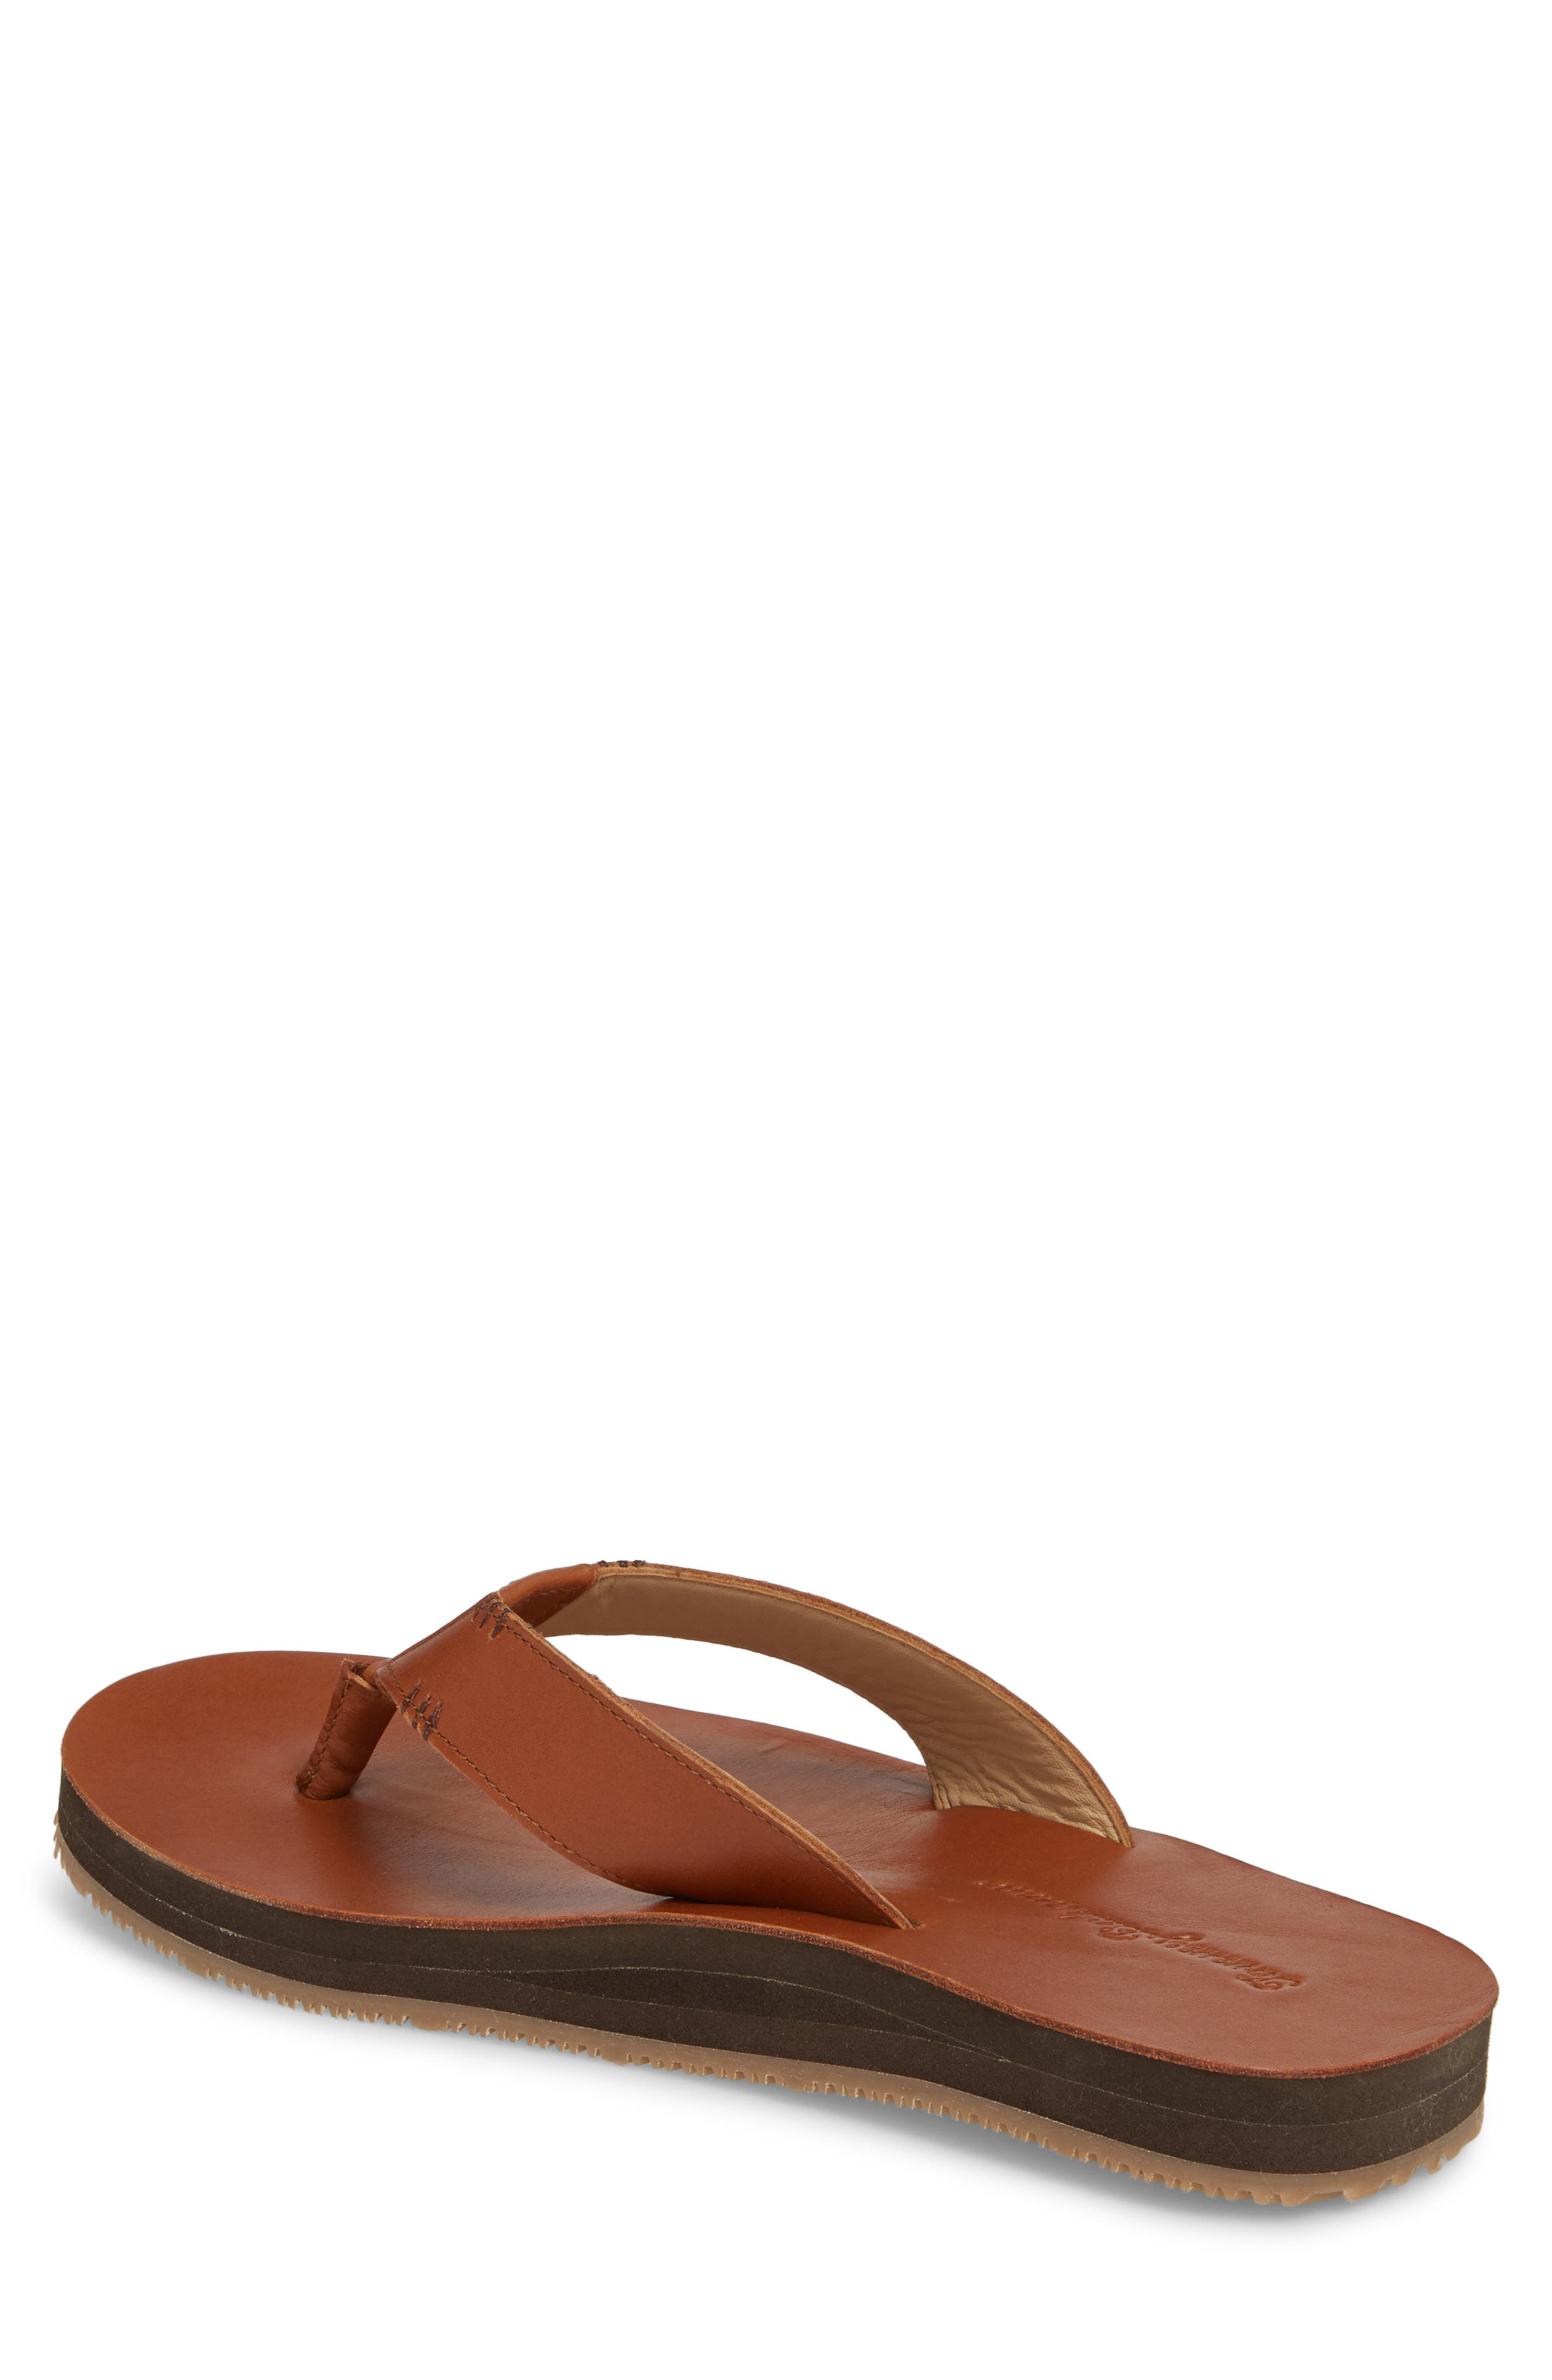 TOMMY BAHAMA, Adderly Flip Flop, Alternate thumbnail 2, color, TAN LEATHER